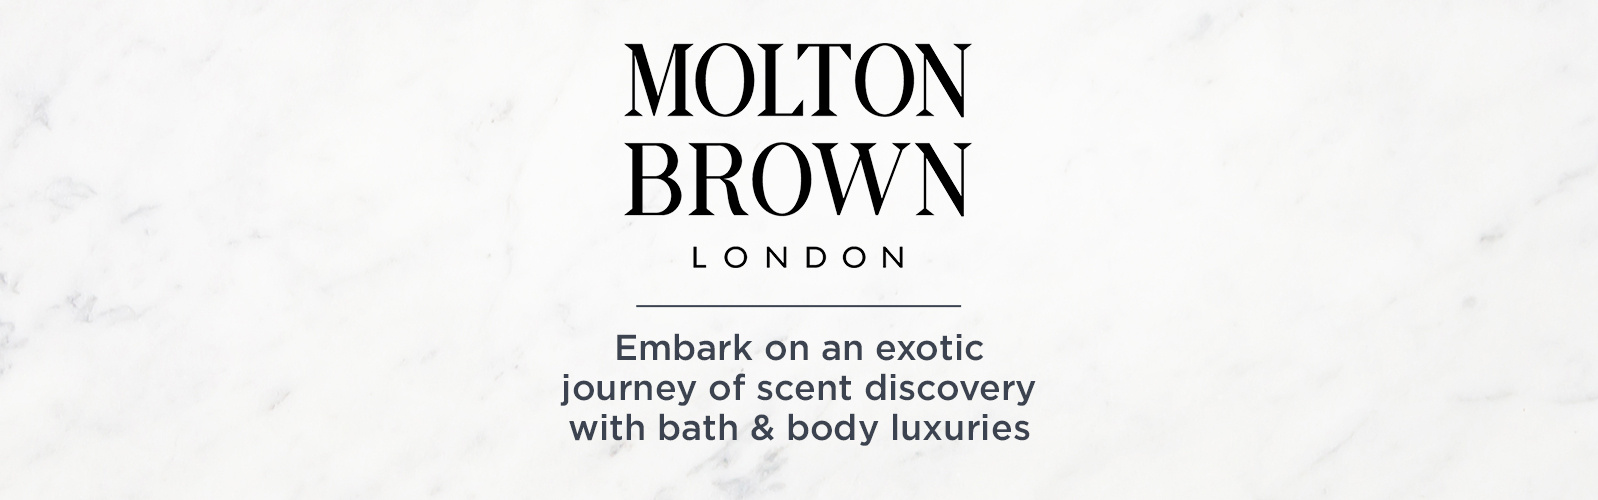 Molton Brown. Embark on an exotic journey of scent discovery with bath & body luxuries